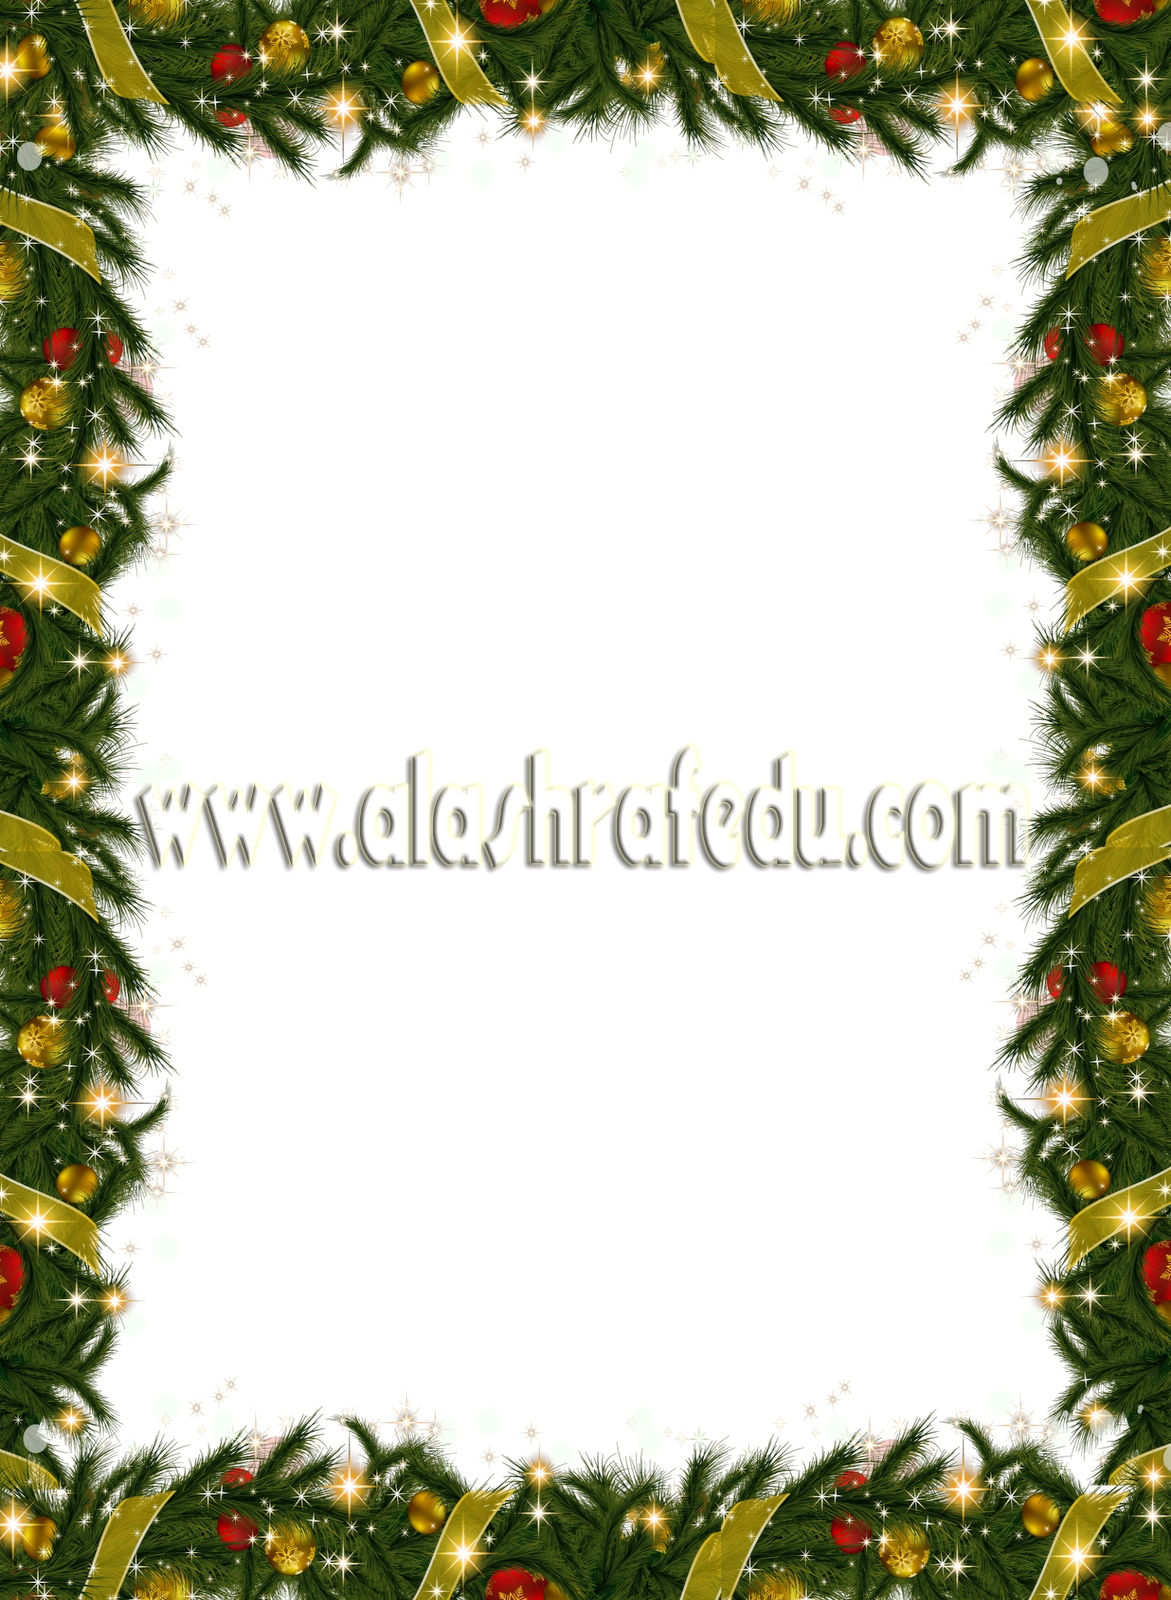 Christmas Holiday Frame With Garland 2019 www.alashrafedu.com1